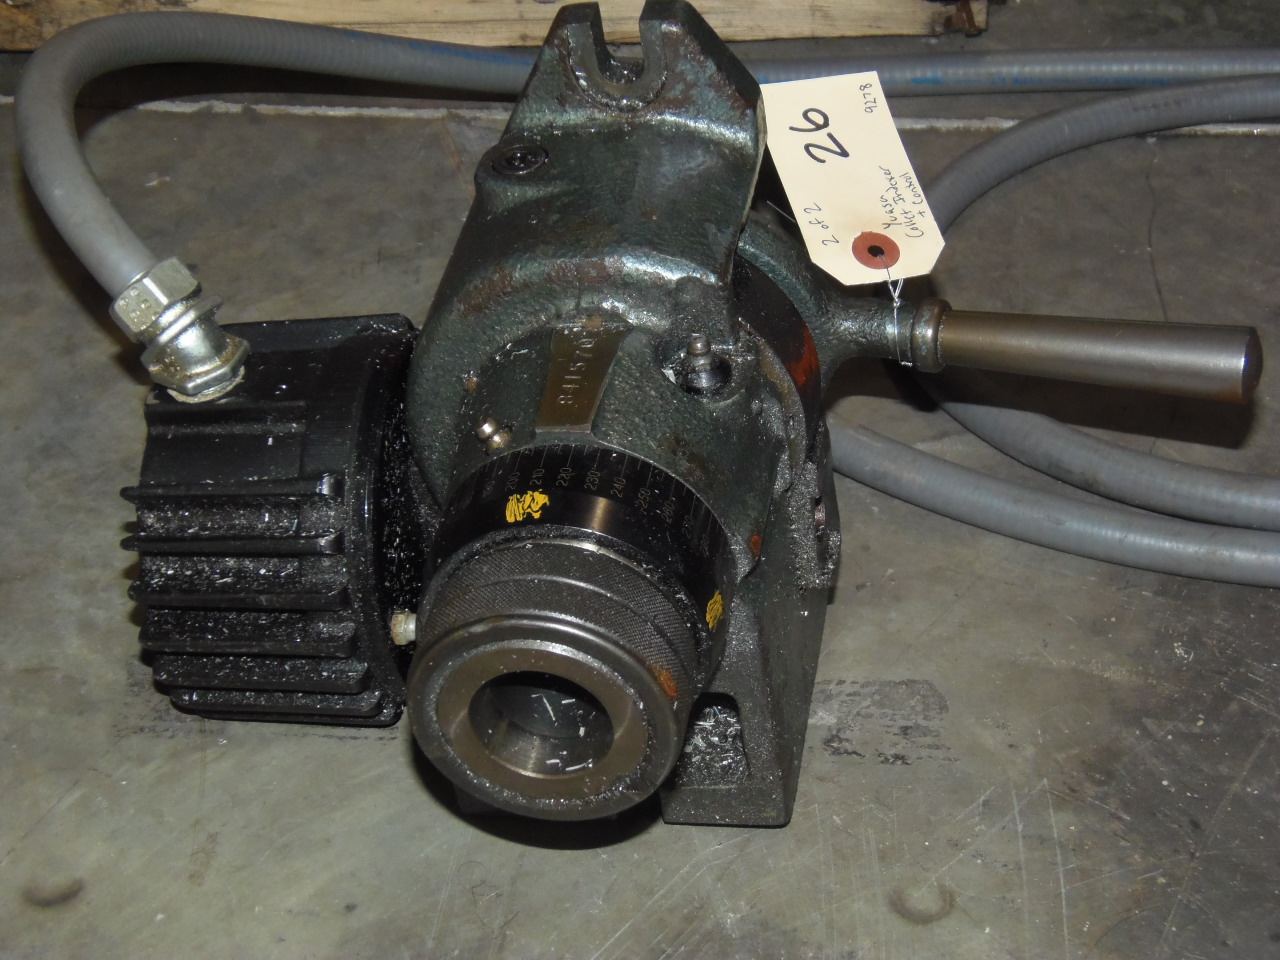 YUASA COLLET STYLE INDEXER, CONTROL INCLUDED